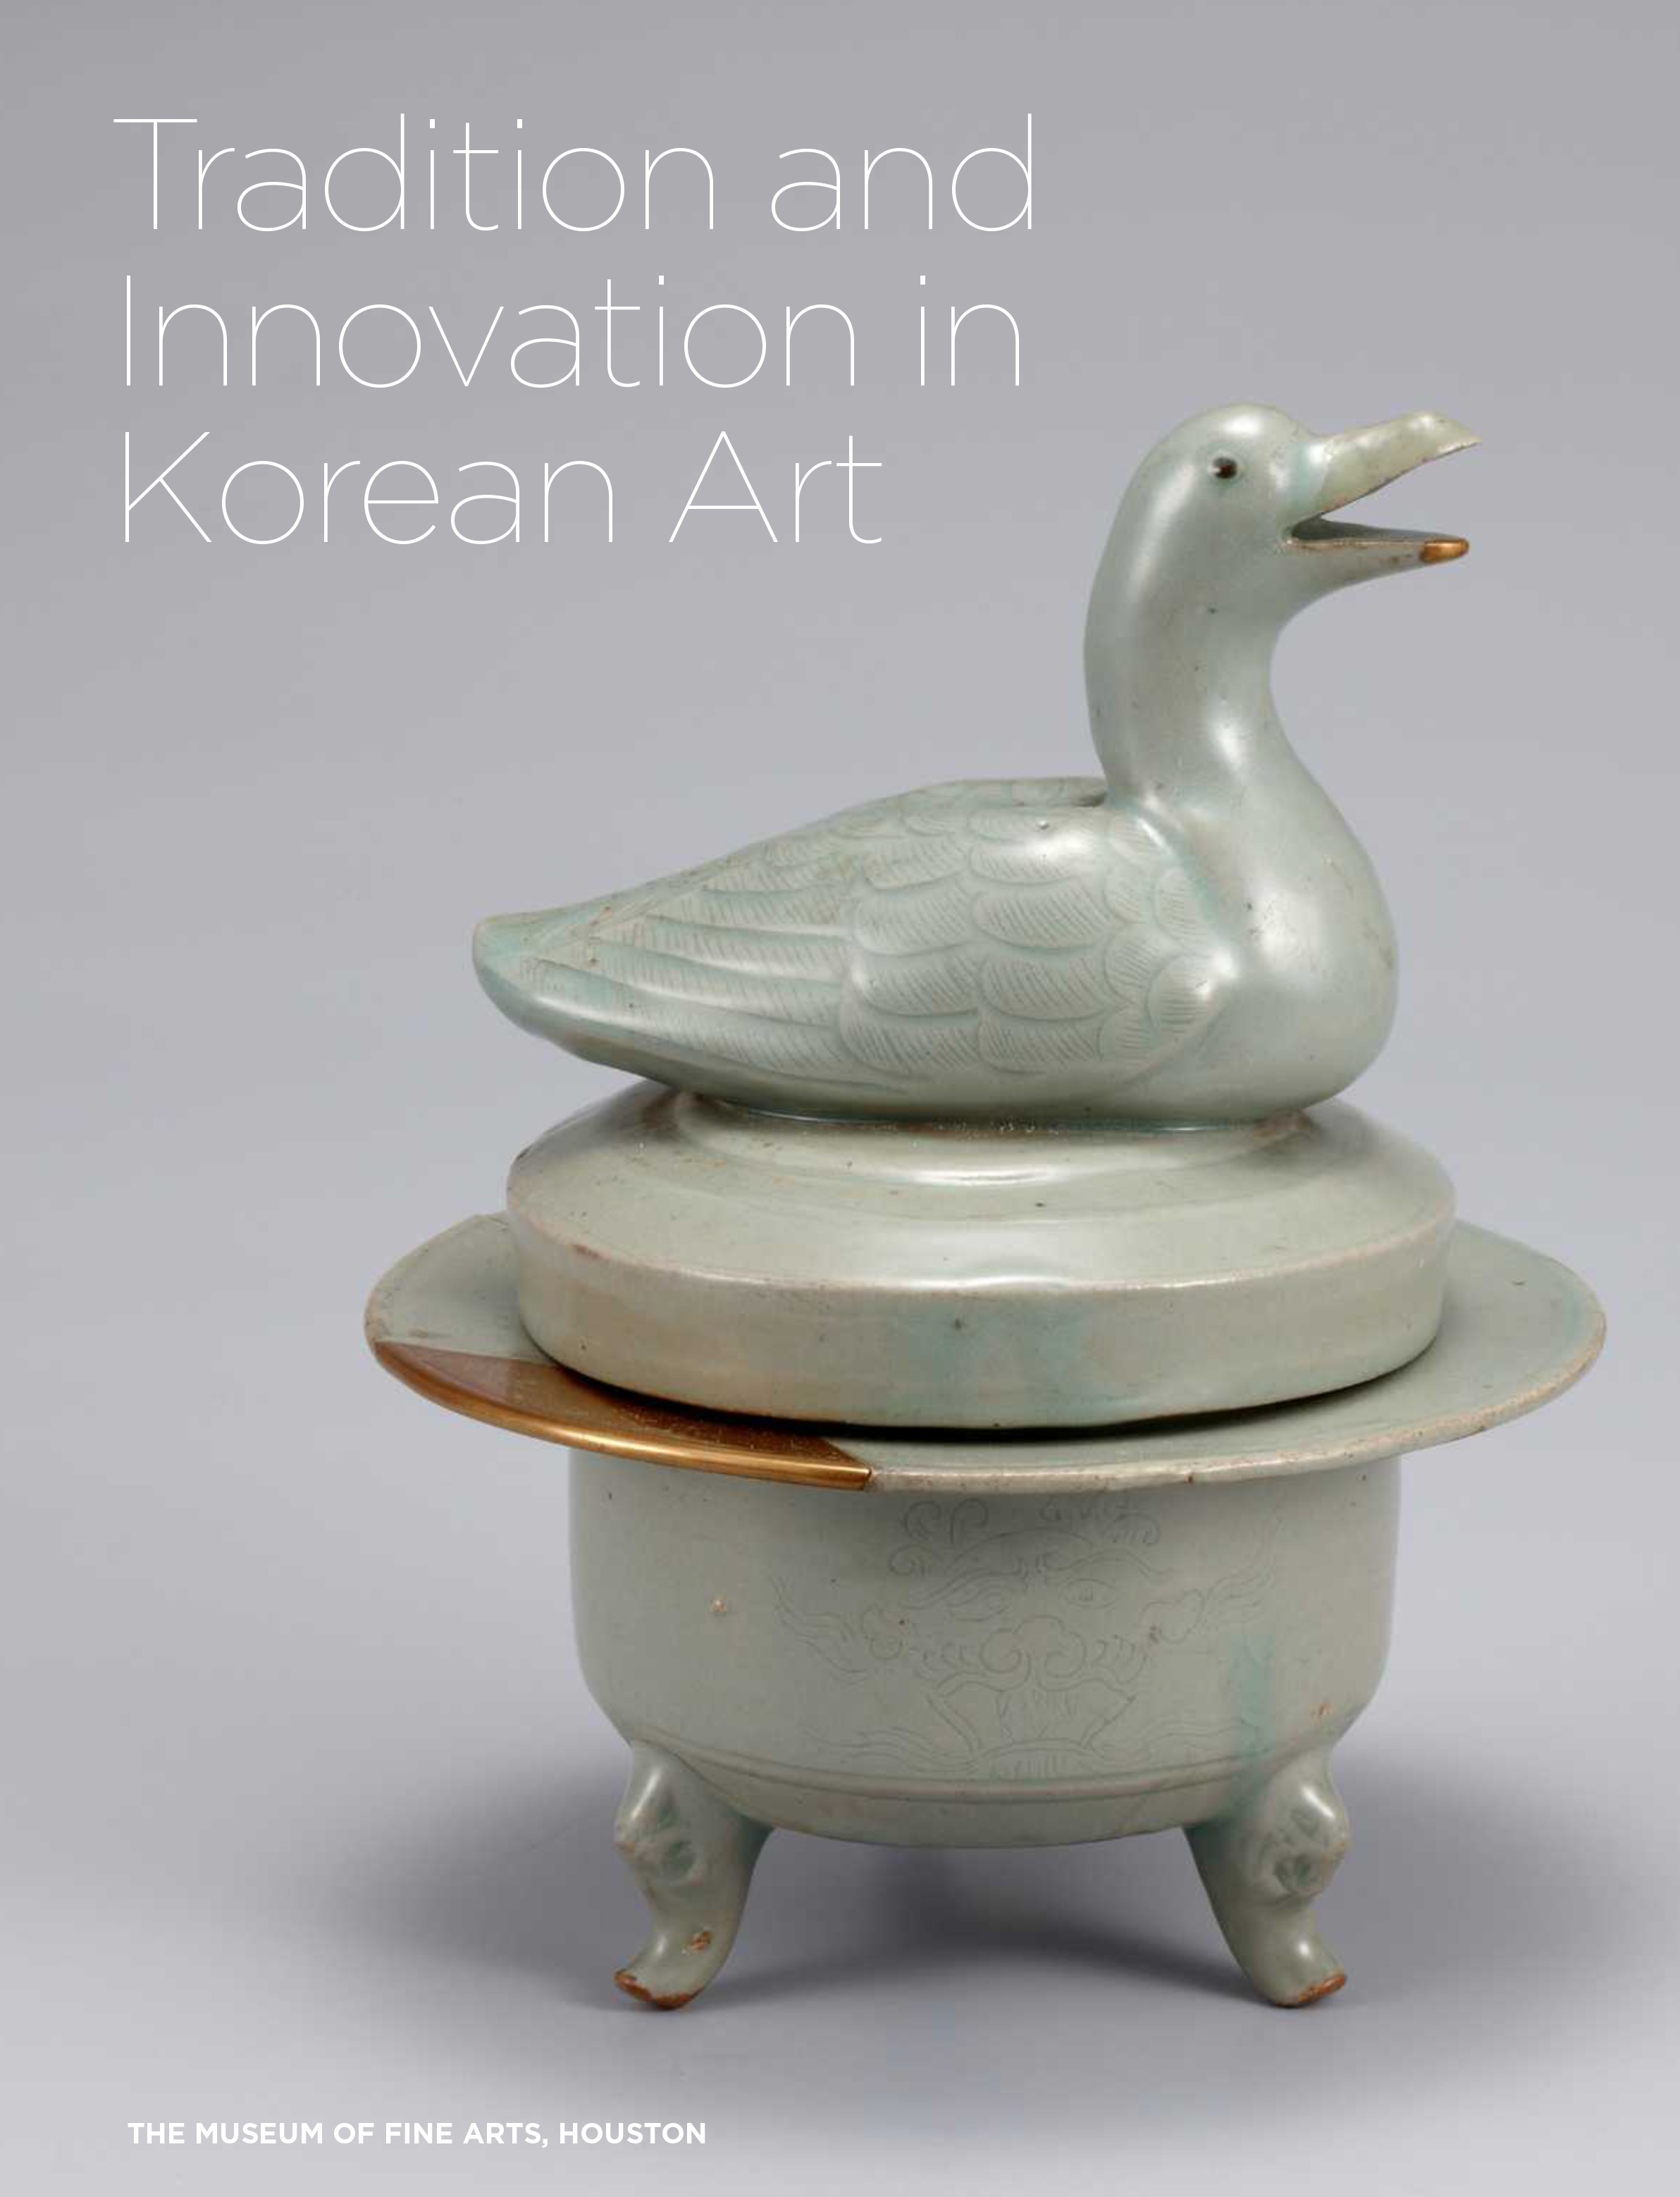 tradition and innovation in korean art